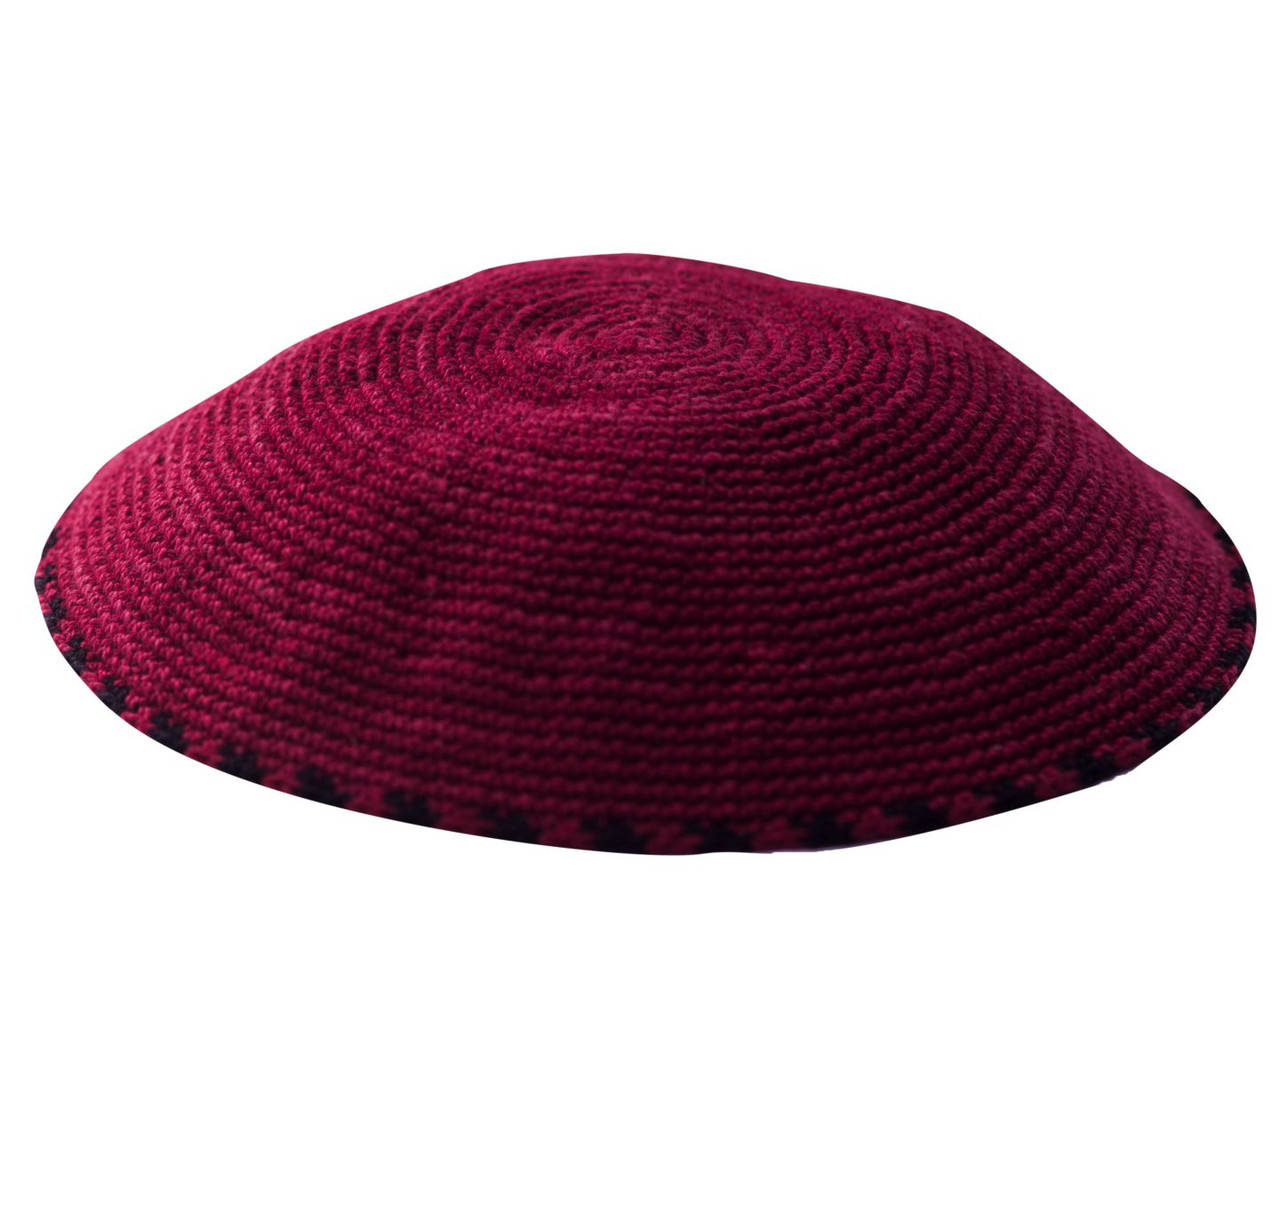 Burgundy DMC Knitted Kippah